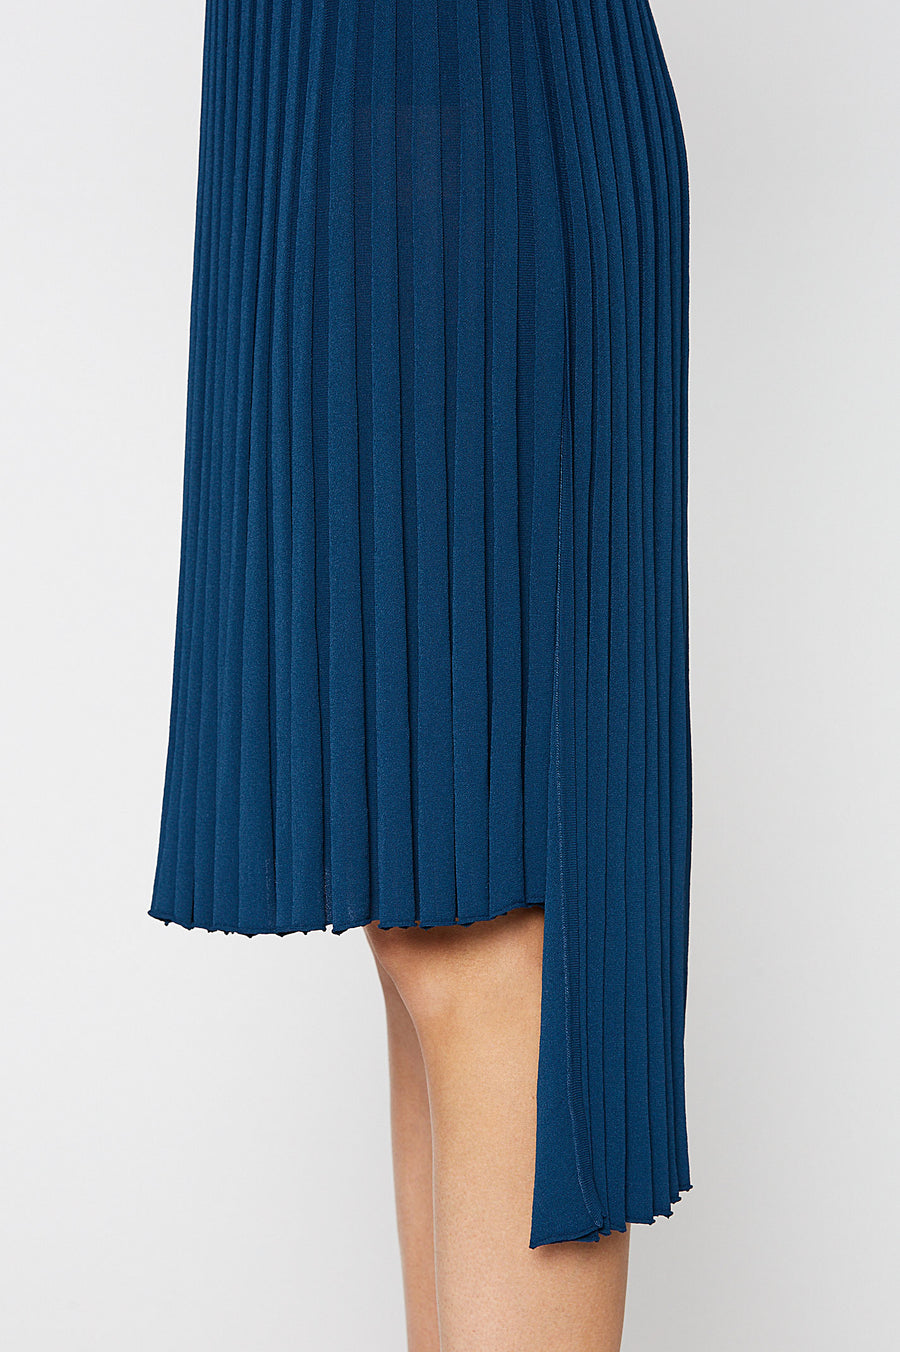 PLEATED RIB WRAP SKIRT 16, TEAL color